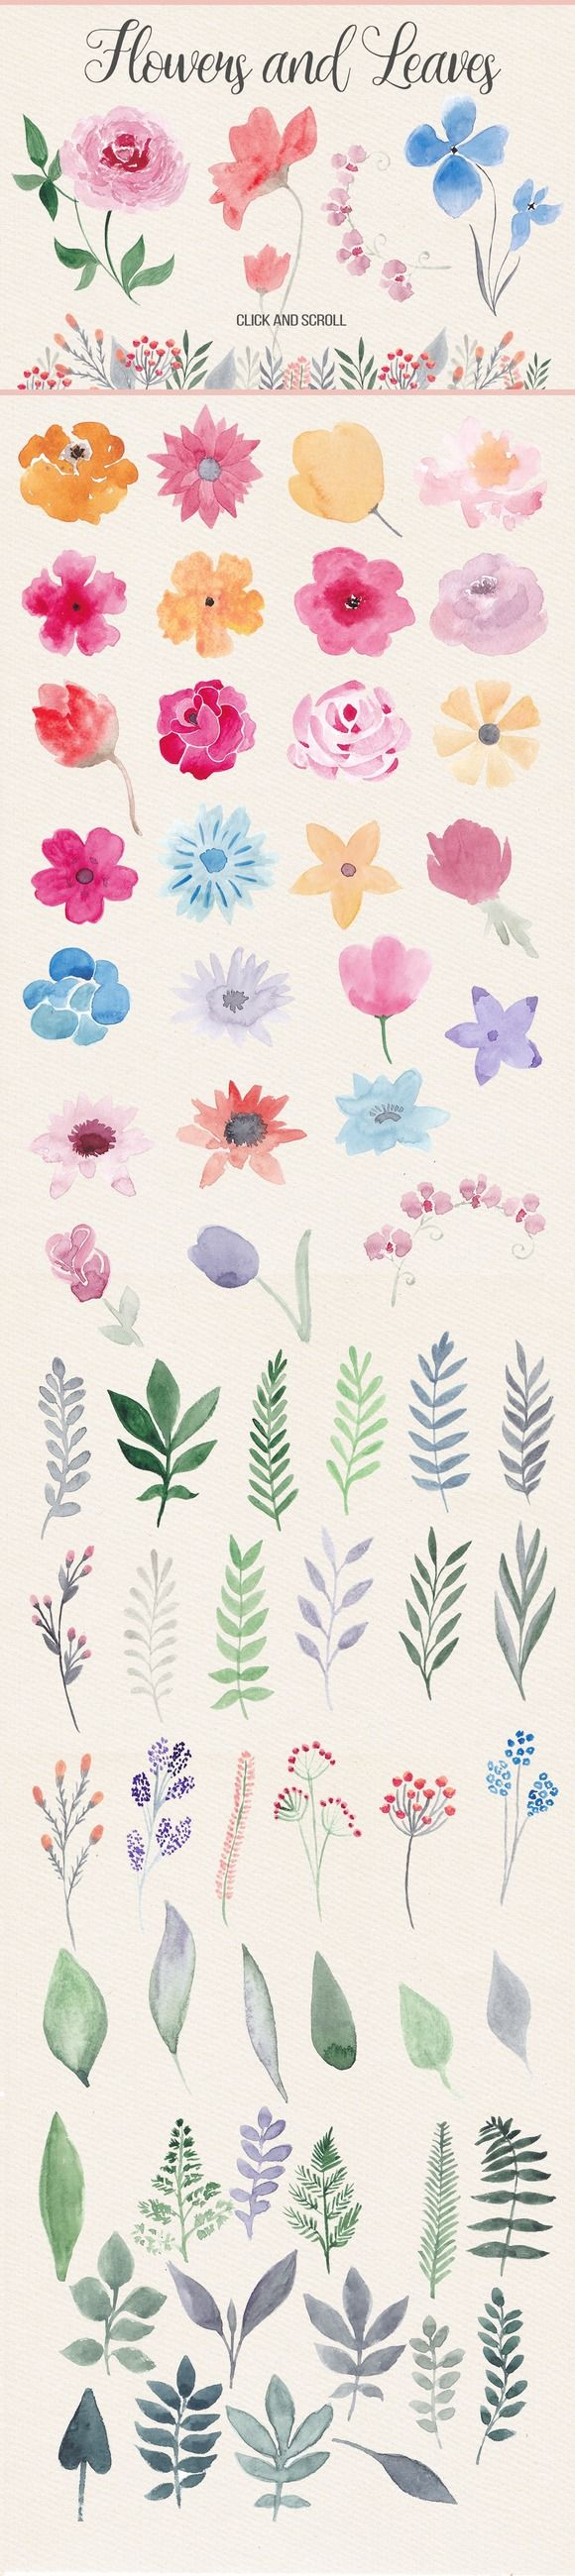 This pack contains more than 40 watercolor flowers, about 40 floral elements (leaves, branches), 5 watercolor bouquets, 12 decorative borders, 20 hand-painted yellow banners/ribbons, 6